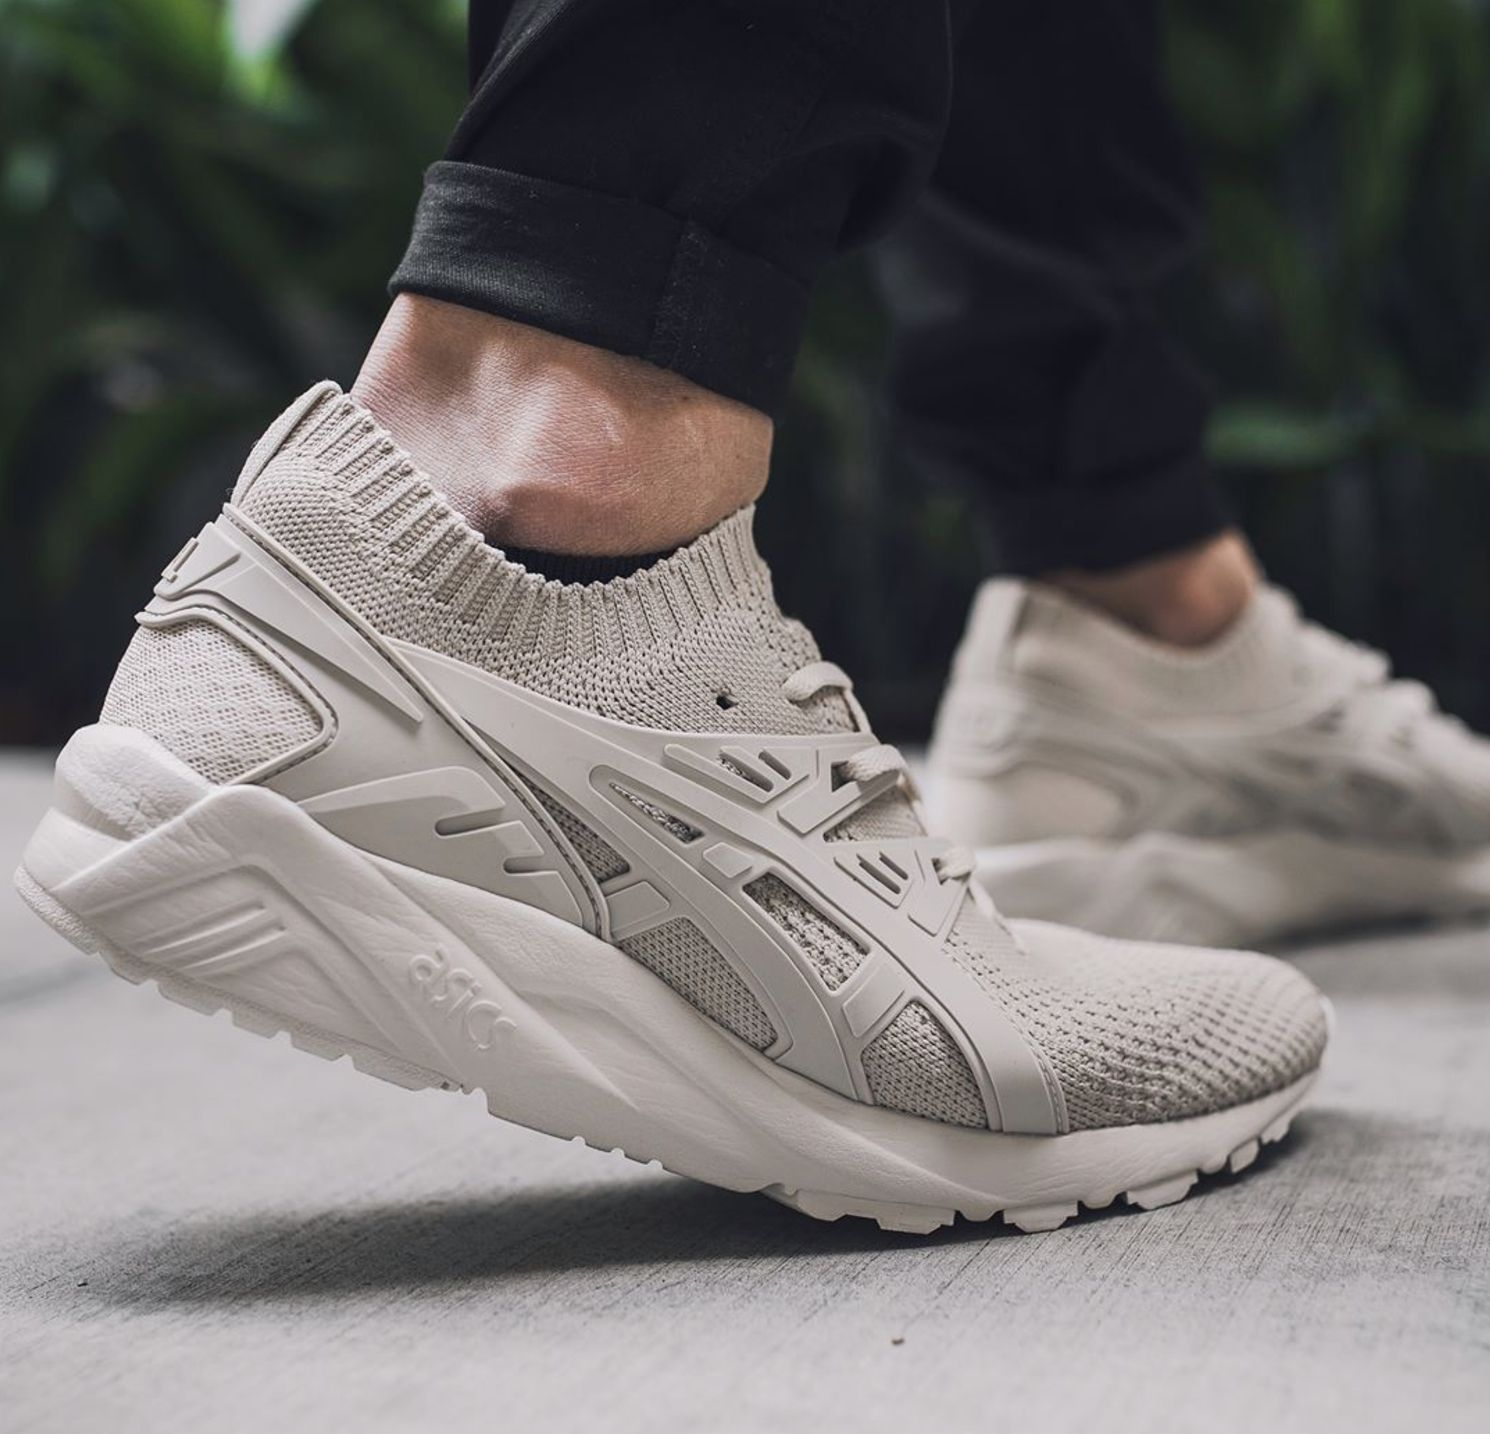 75c93c36a asics gel kayano trainer knit low 2